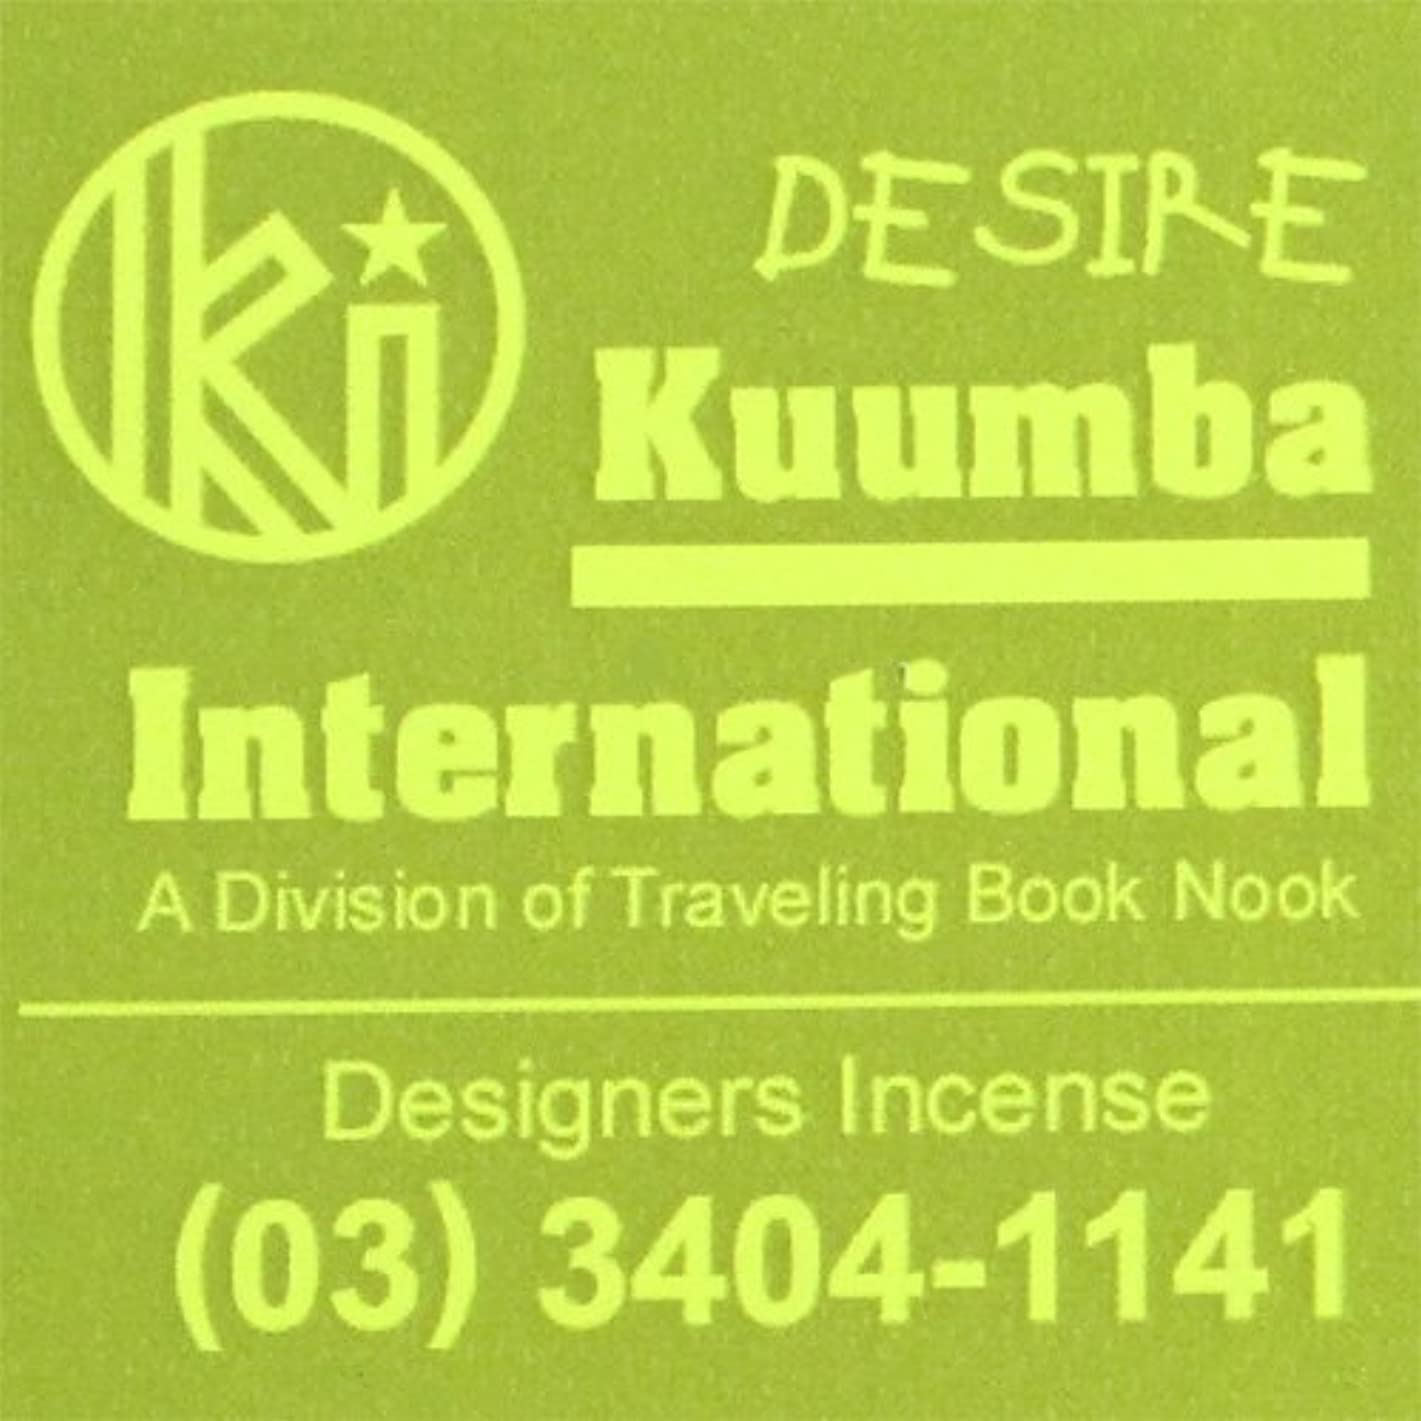 シンクオッズ酸度(クンバ) KUUMBA『classic regular incense』(DESIRE) (Regular size)